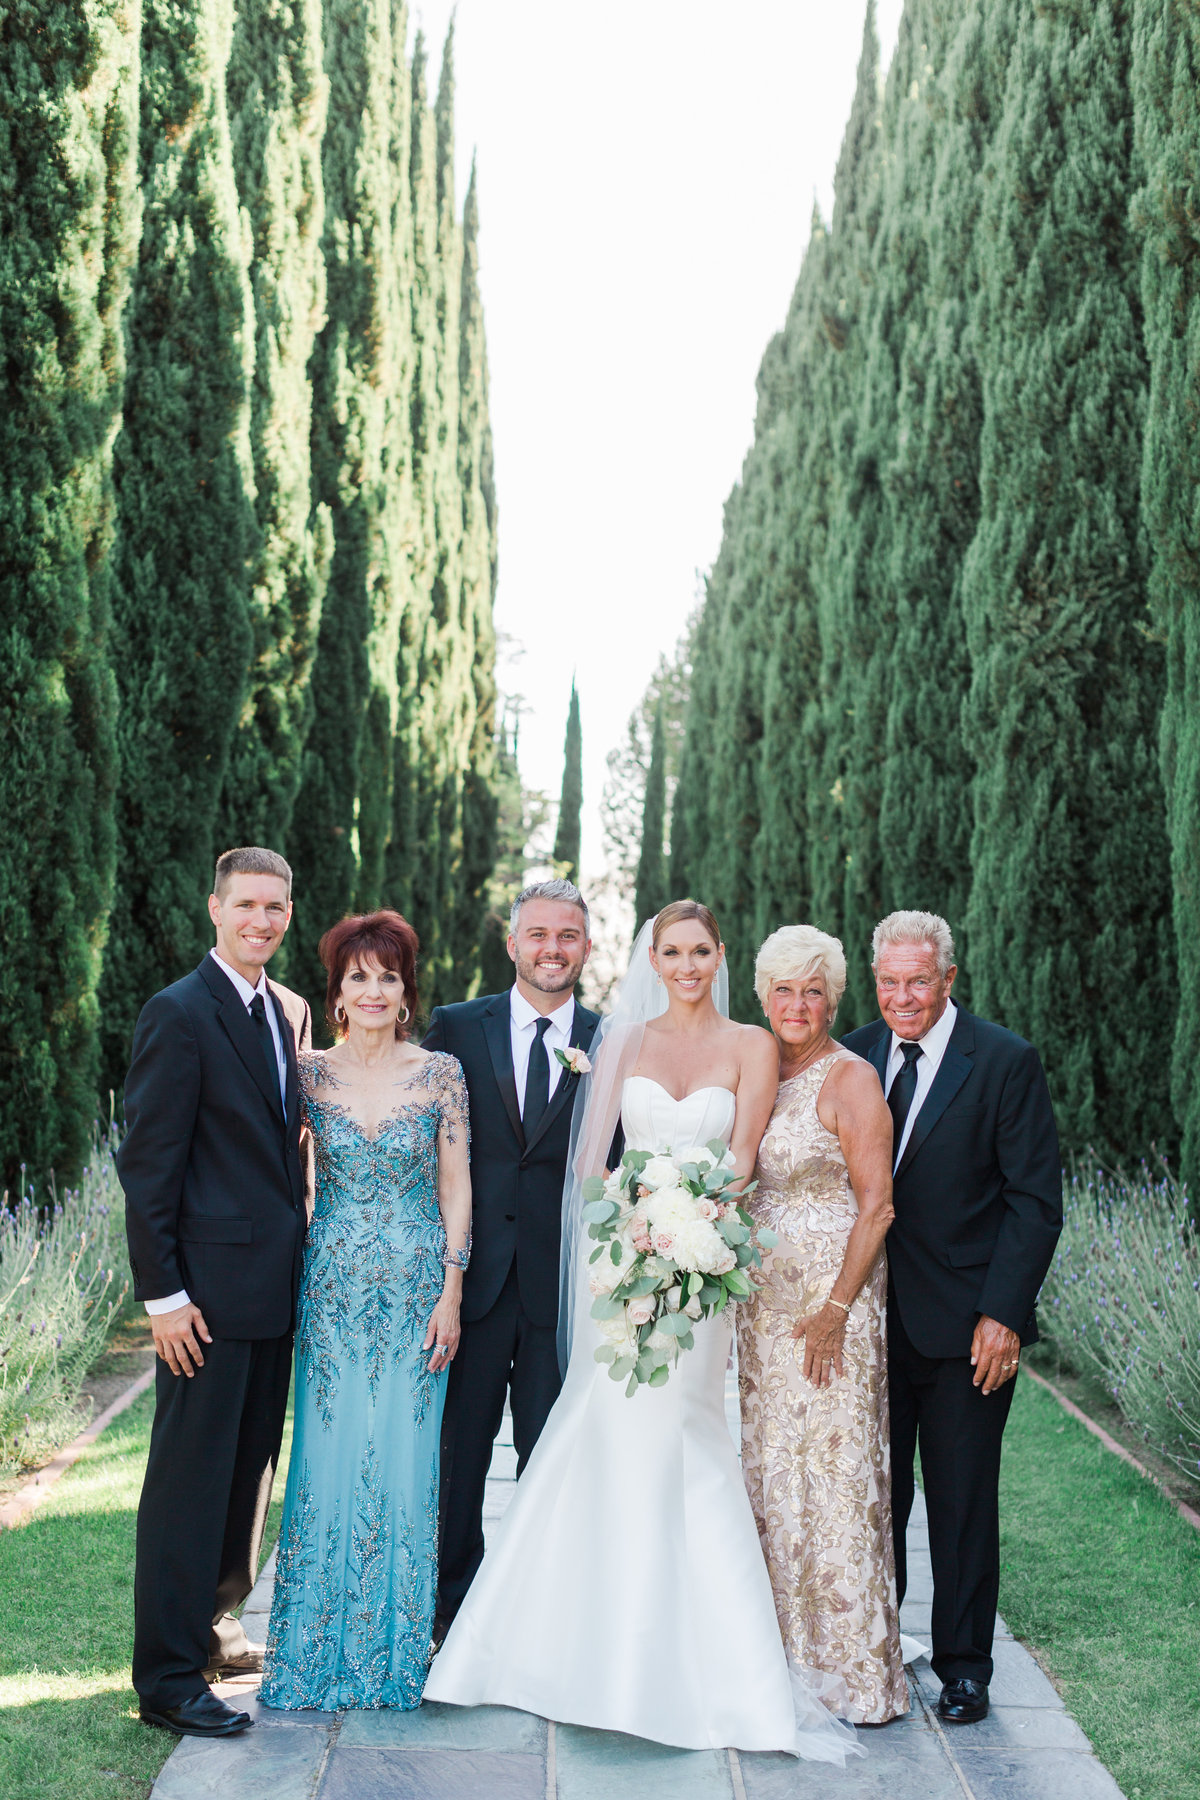 Greystone_Mansion_Intimate_Black_Tie_Wedding_Valorie_Darling_Photography - 109 of 206